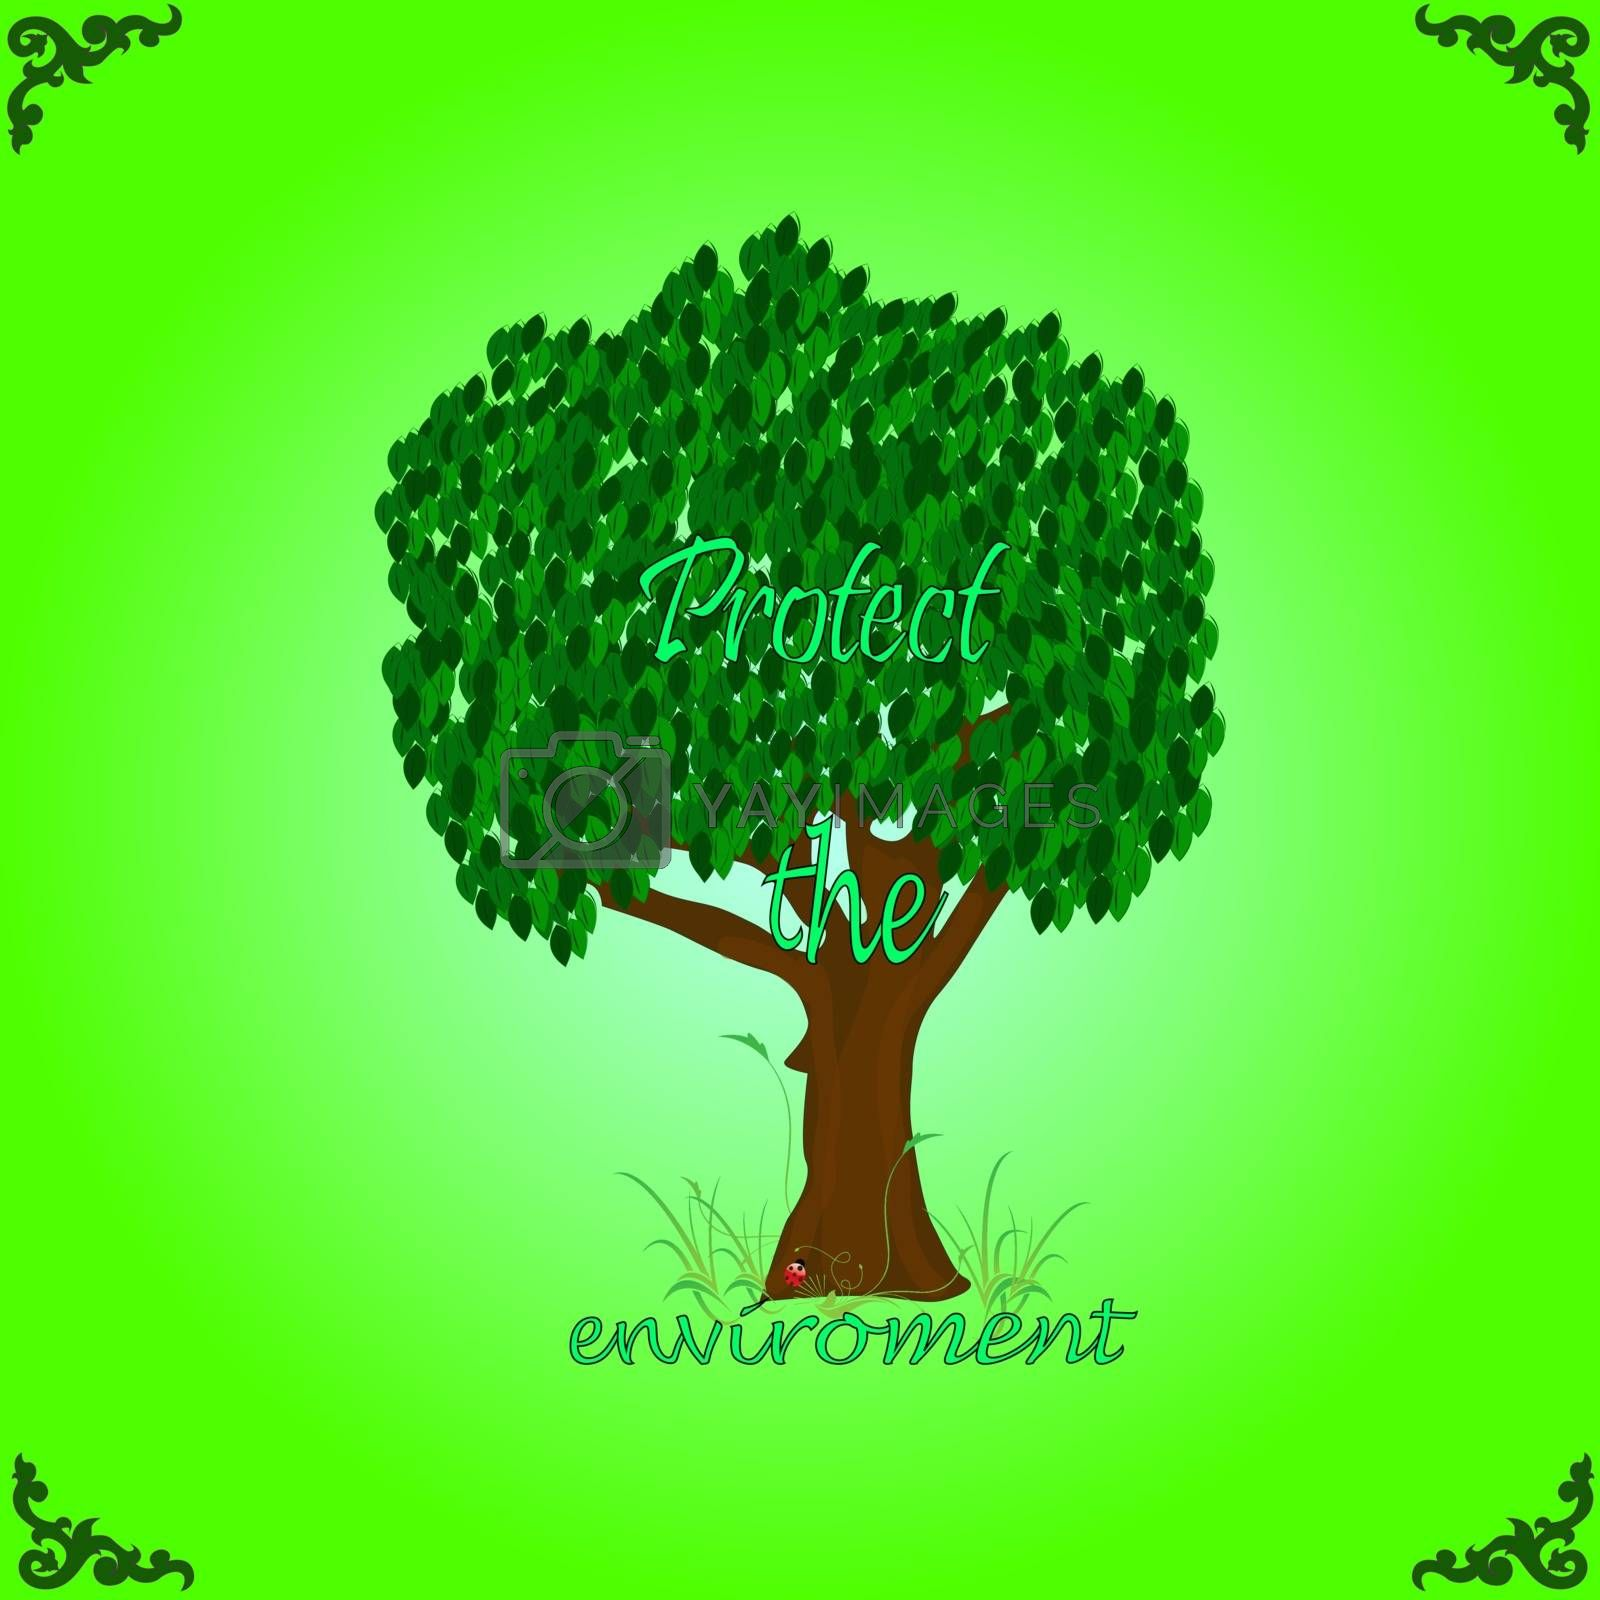 Illustration of tree in the grass, and text on a green background